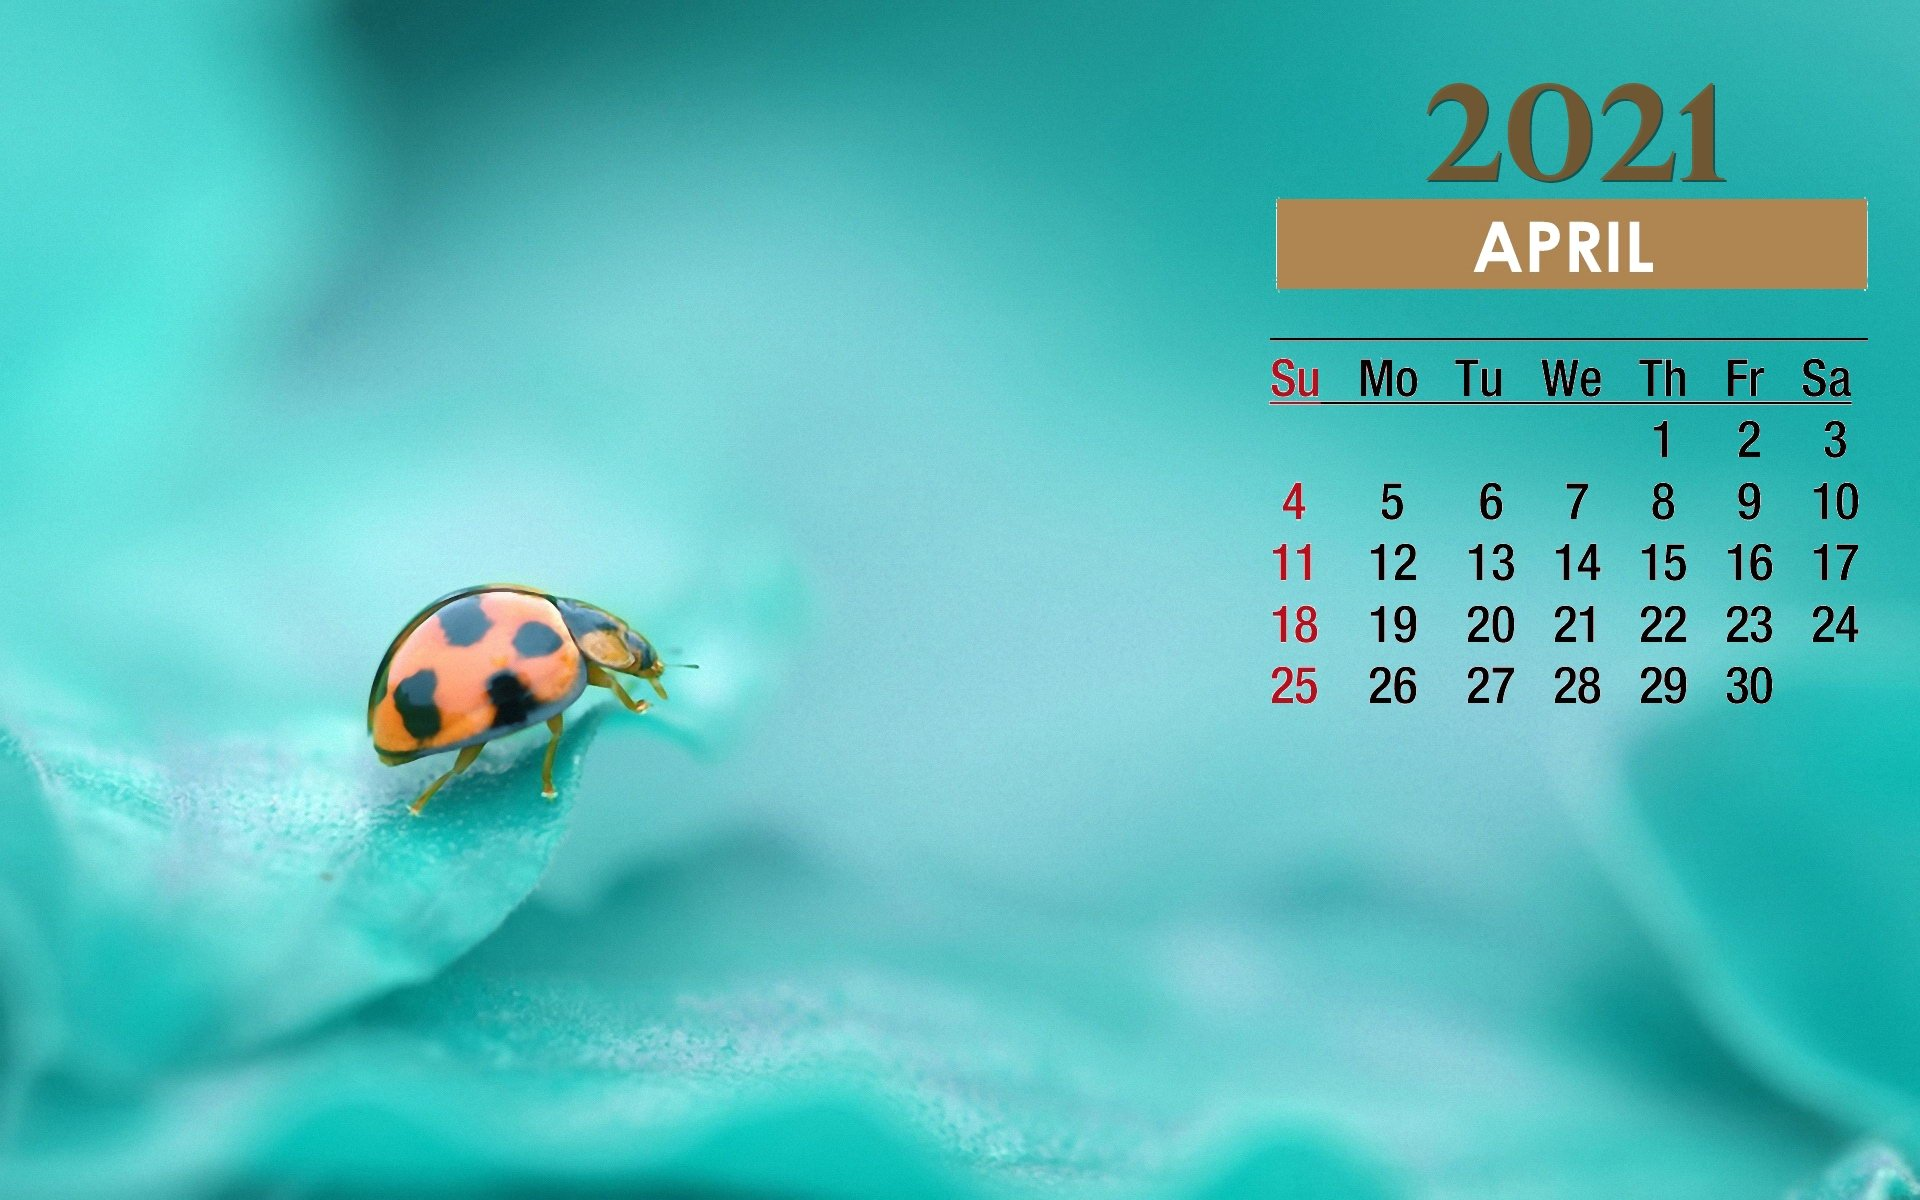 April 2021 Calendar Beetle Wallpaper 72162   Baltana 1920x1200